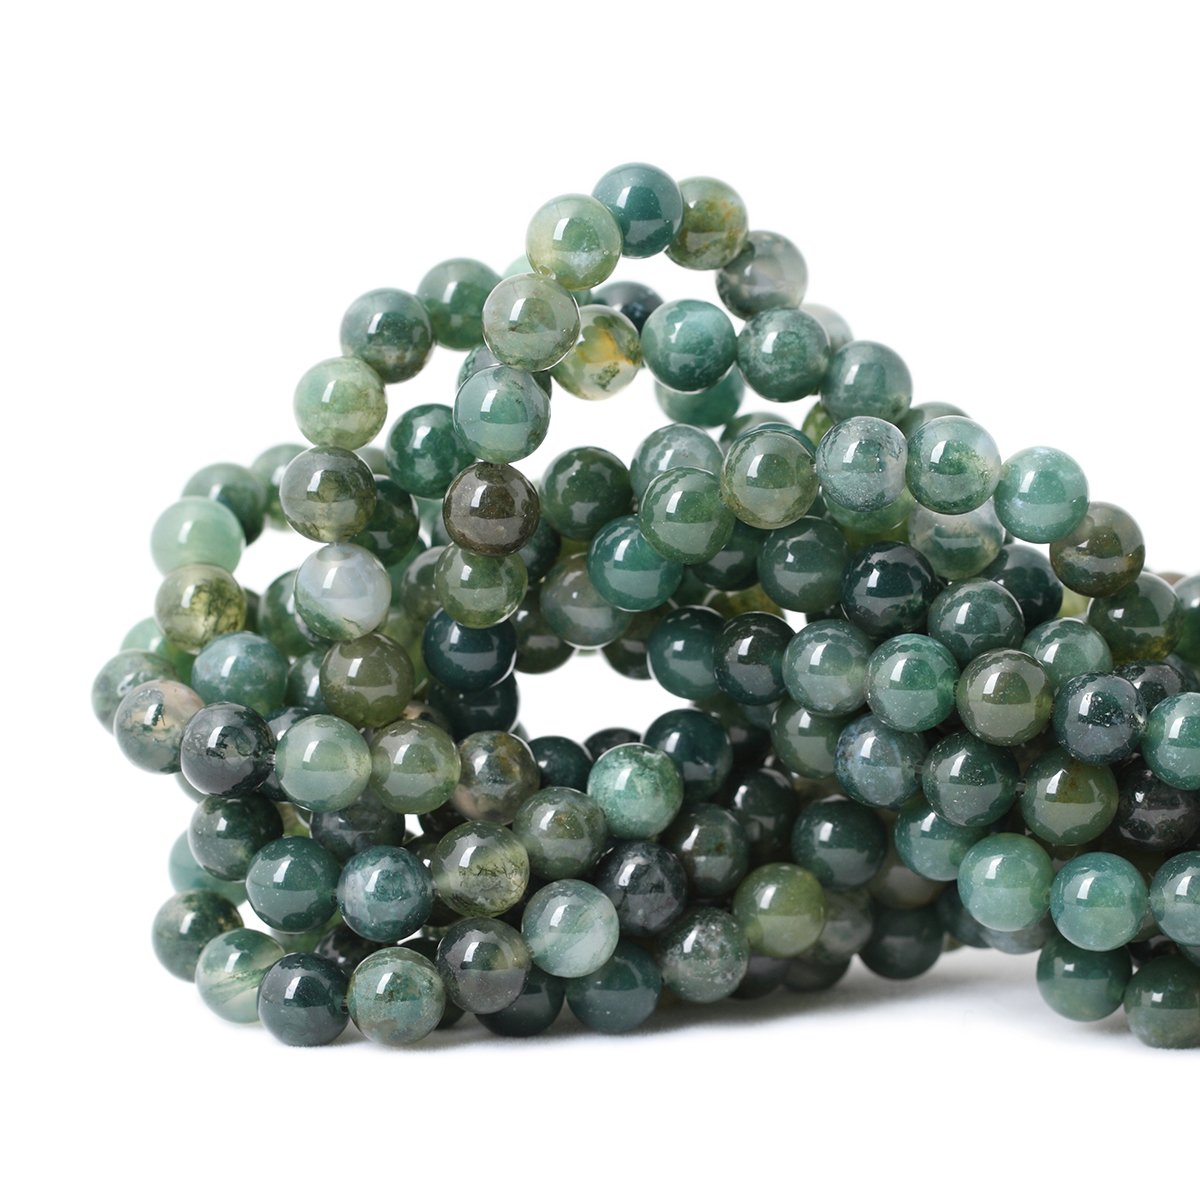 """Qiwan 45PCS 8mm Moss Agate Gemstone Loose Beads Natural Round Crystal Energy Stone Healing Power for Jewelry Making 1 Strand 15"""""""